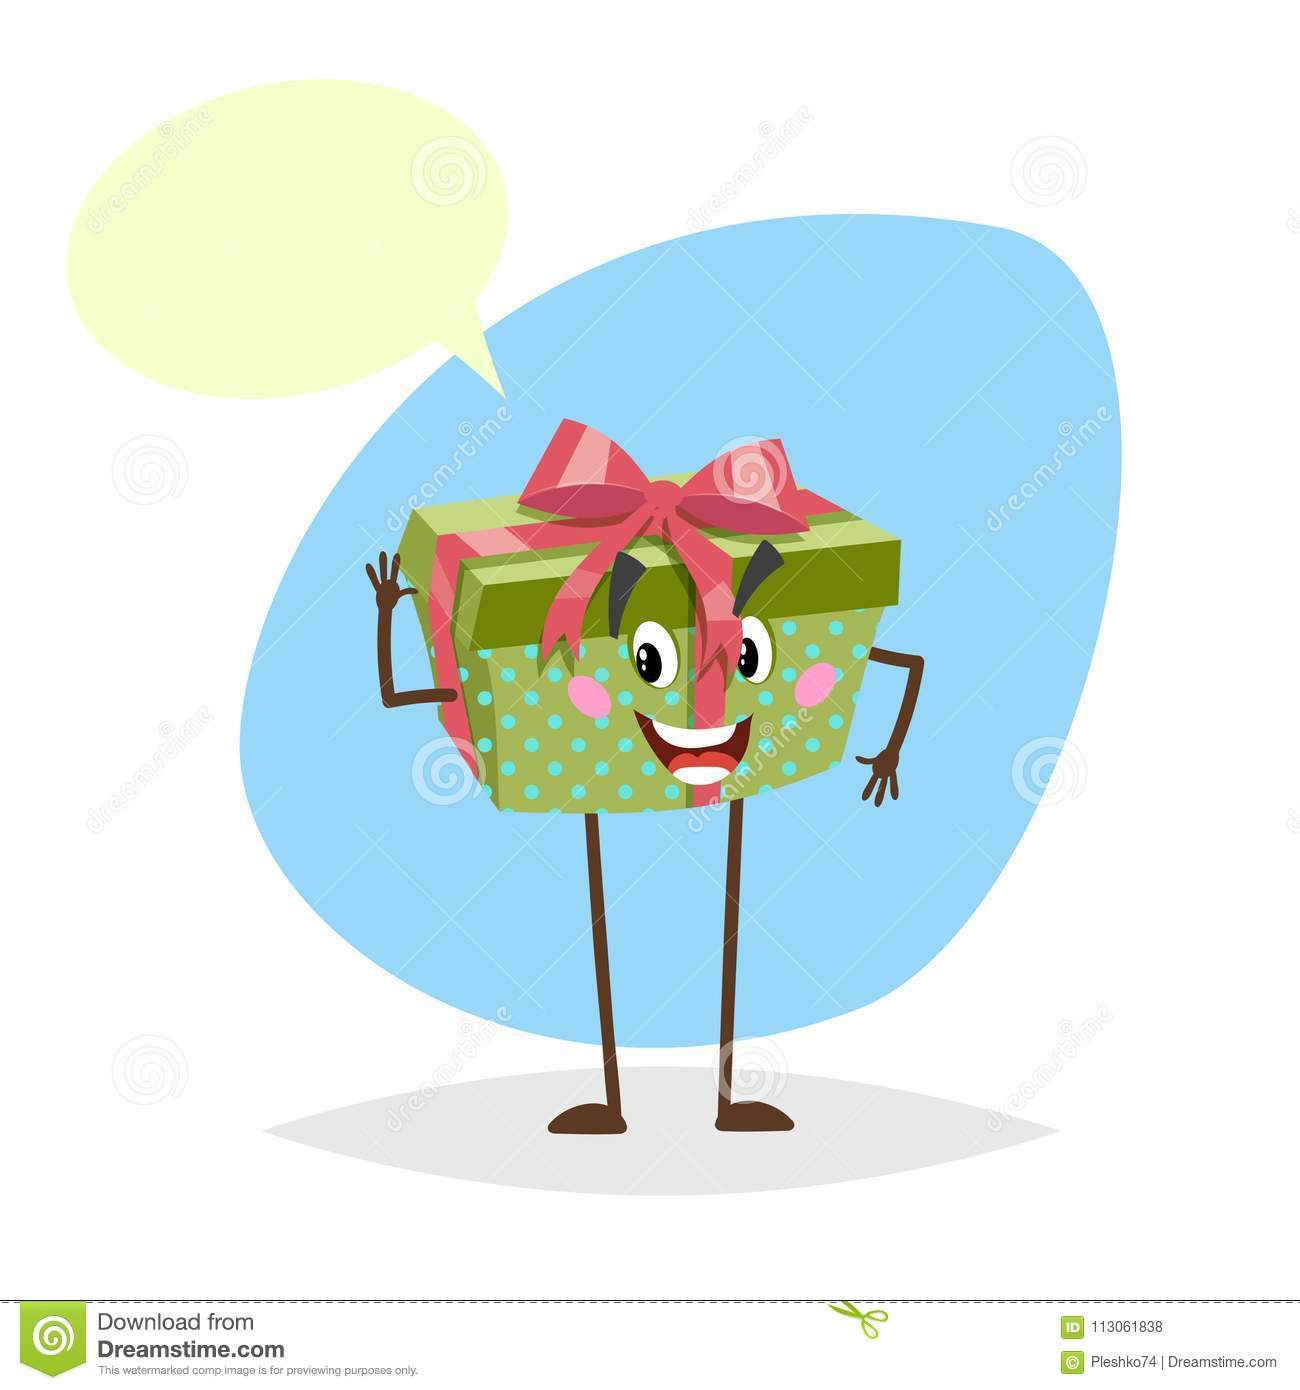 Cartoon Green Dotted Smiling Gift Box Character With Red Ribbon And